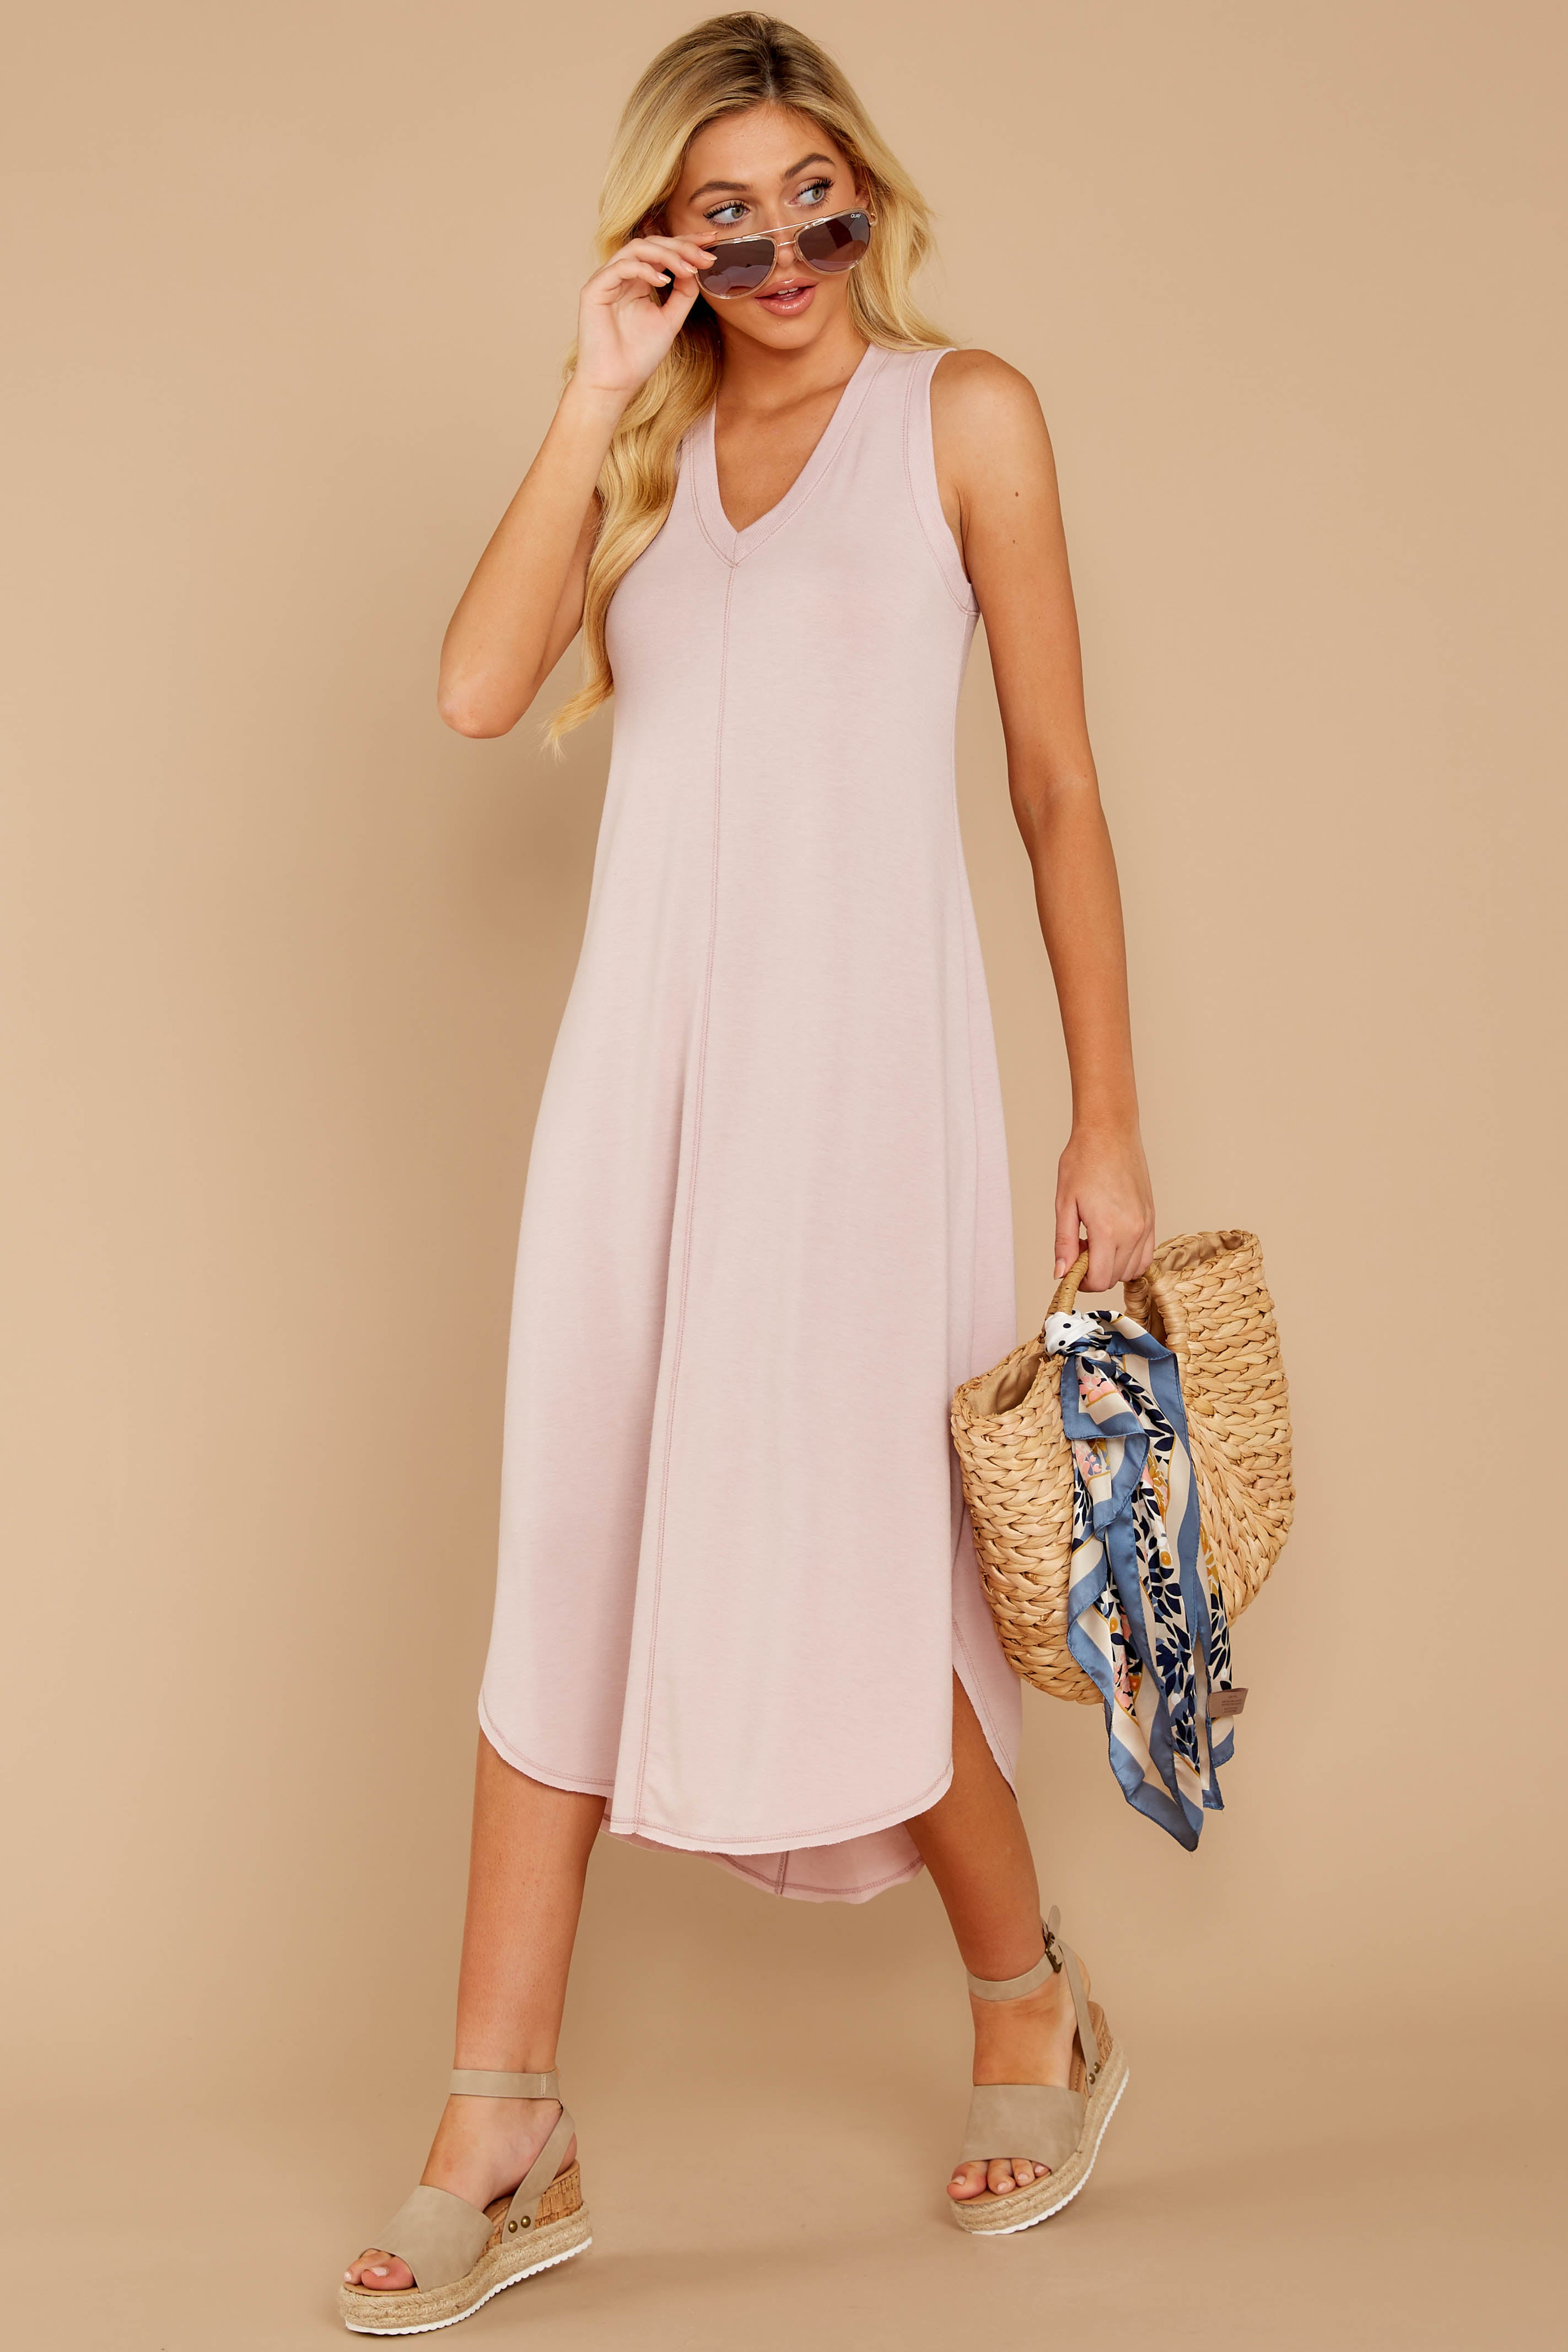 3 Unleashed Comfort Powder Pink Midi Dress at reddressboutique.com